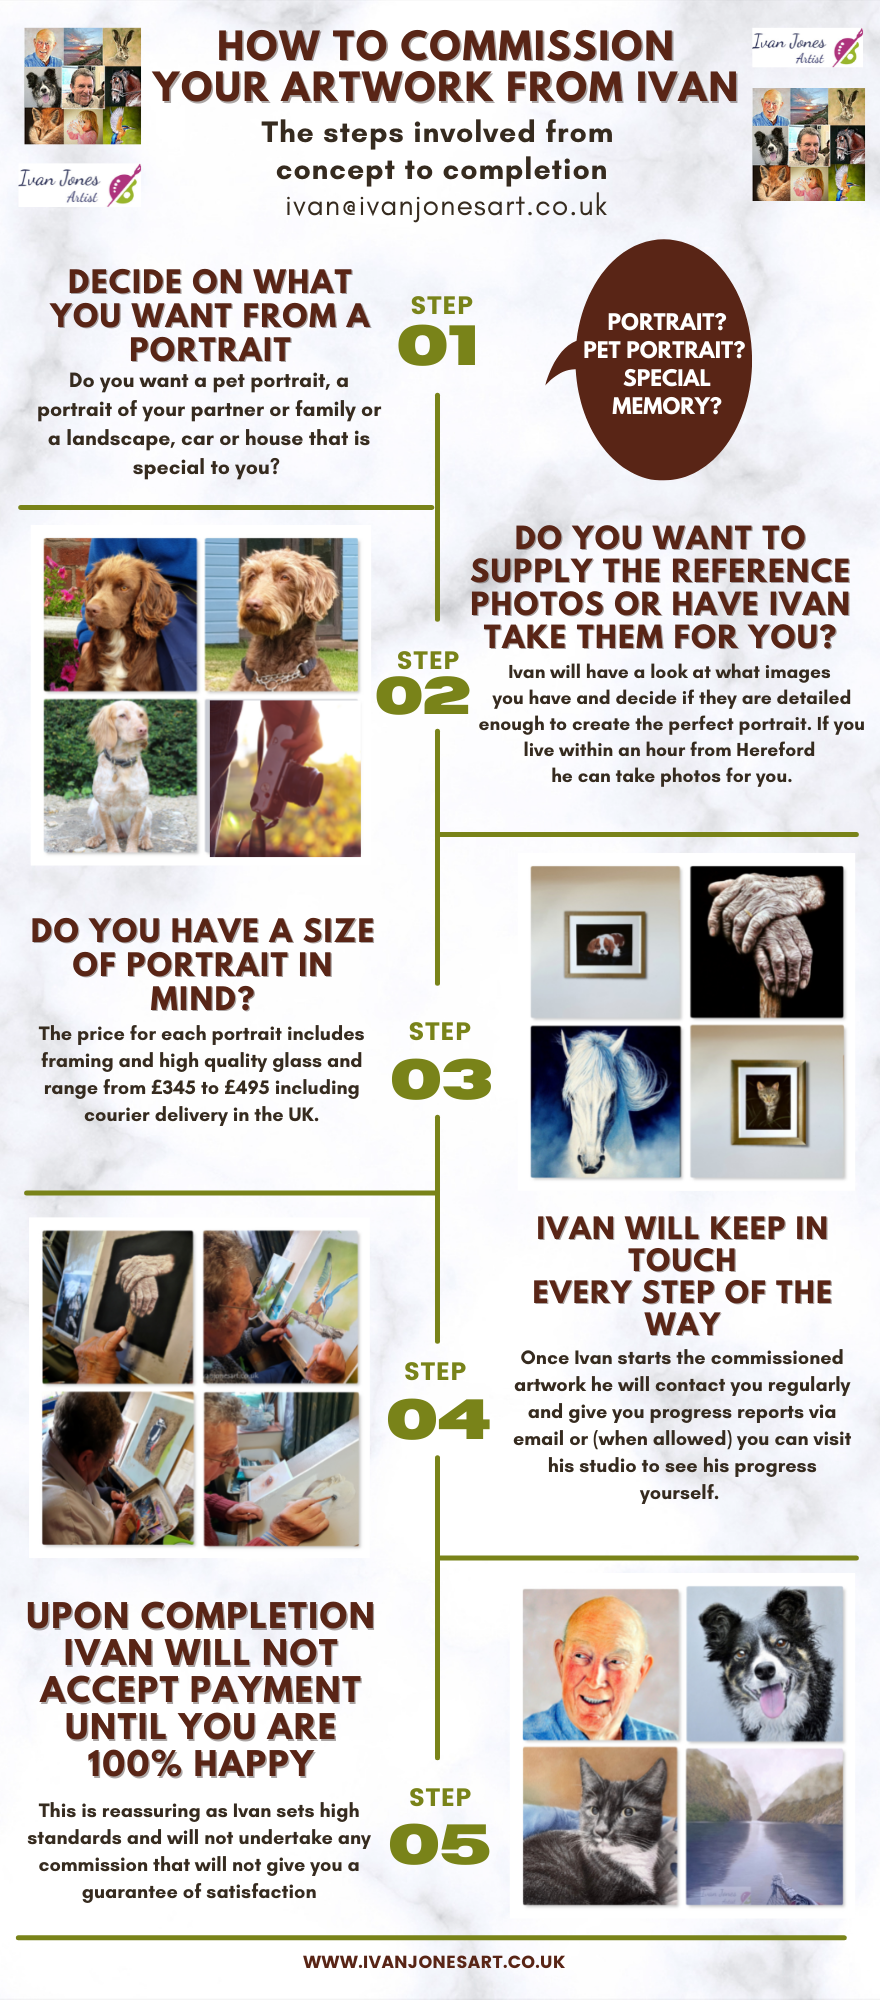 The steps to your perfect commission. Ivan Jones pastel artist